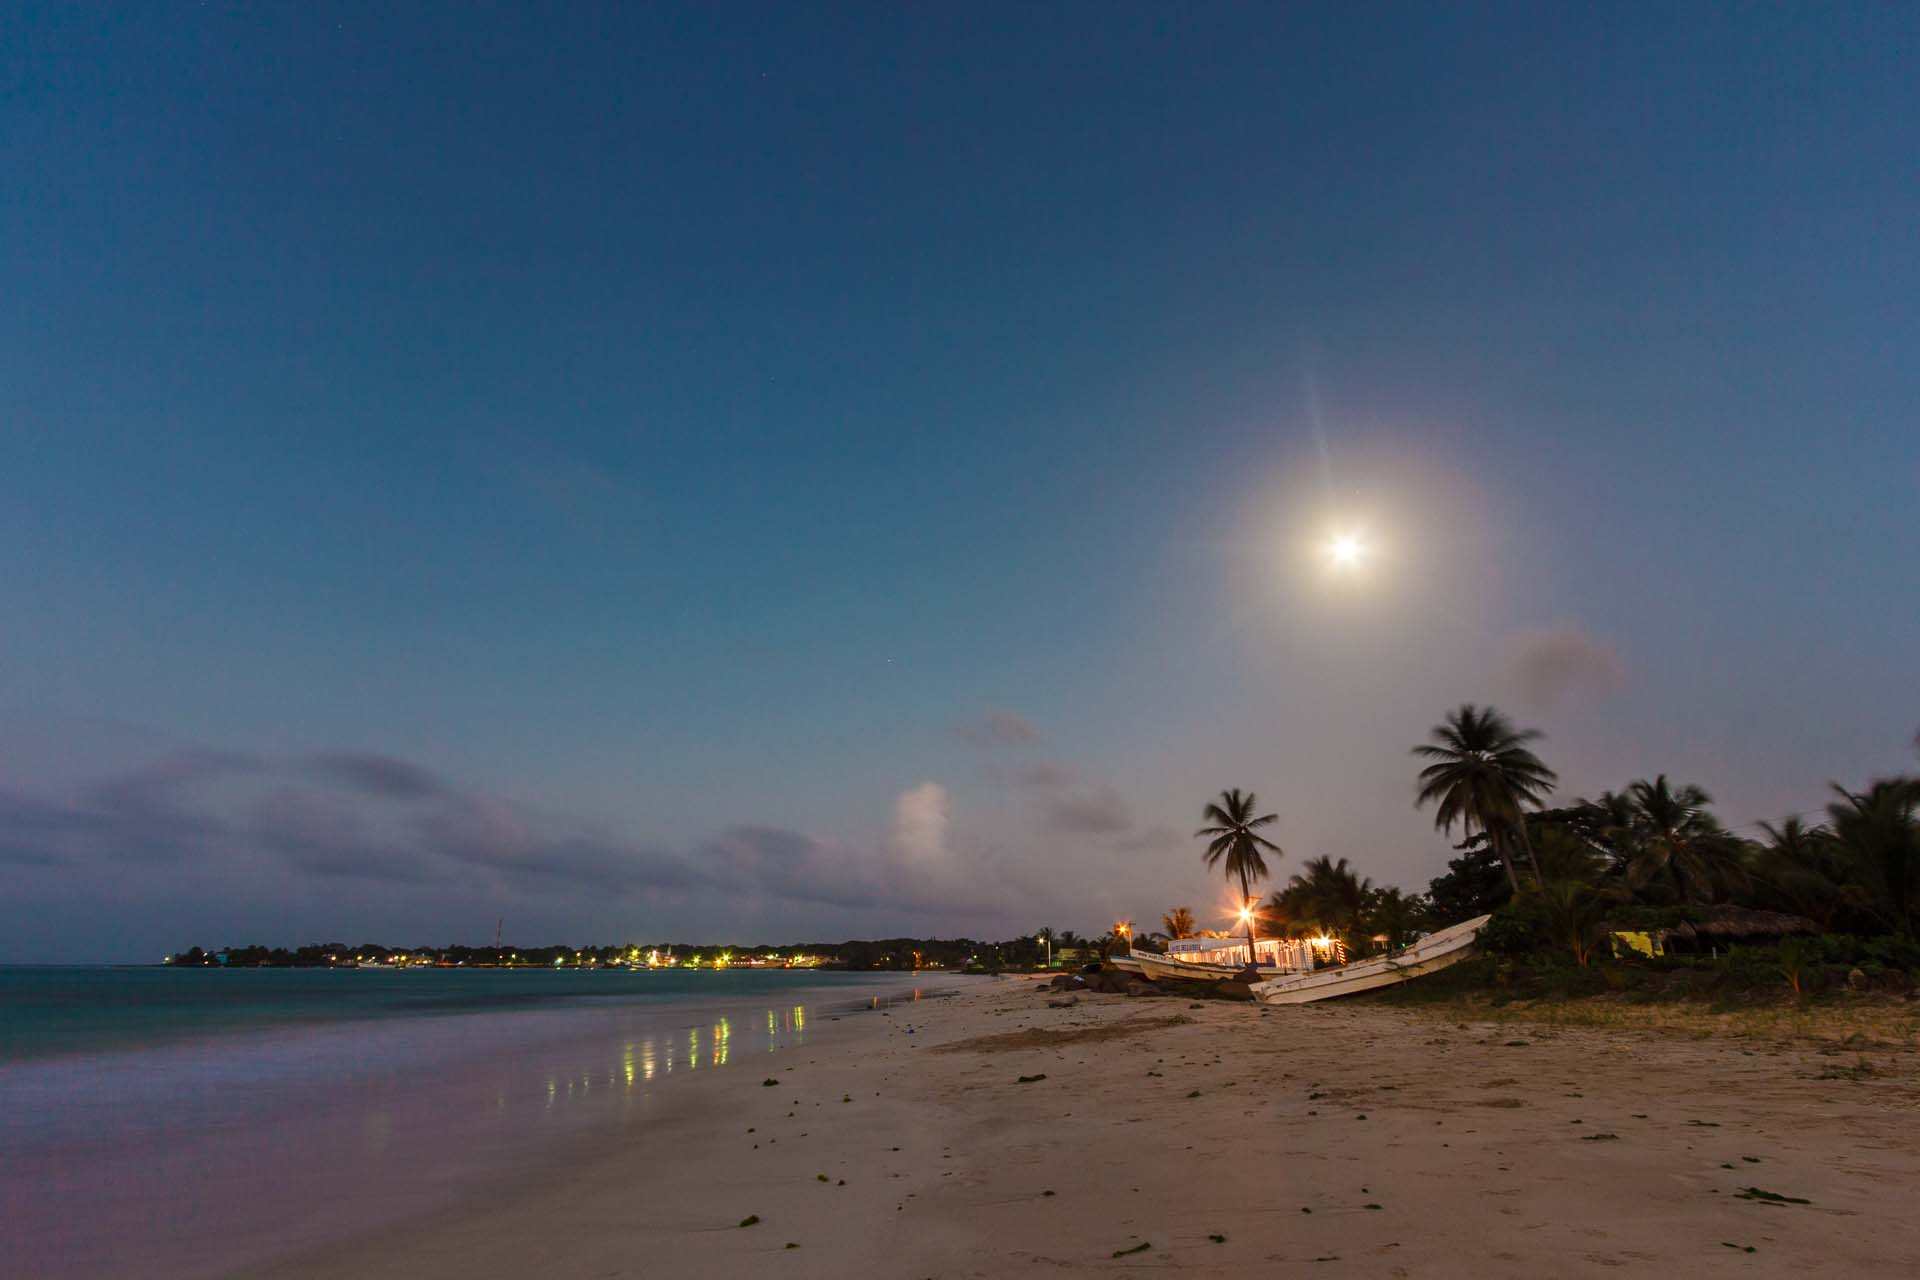 Long exposure moon + beach photography.